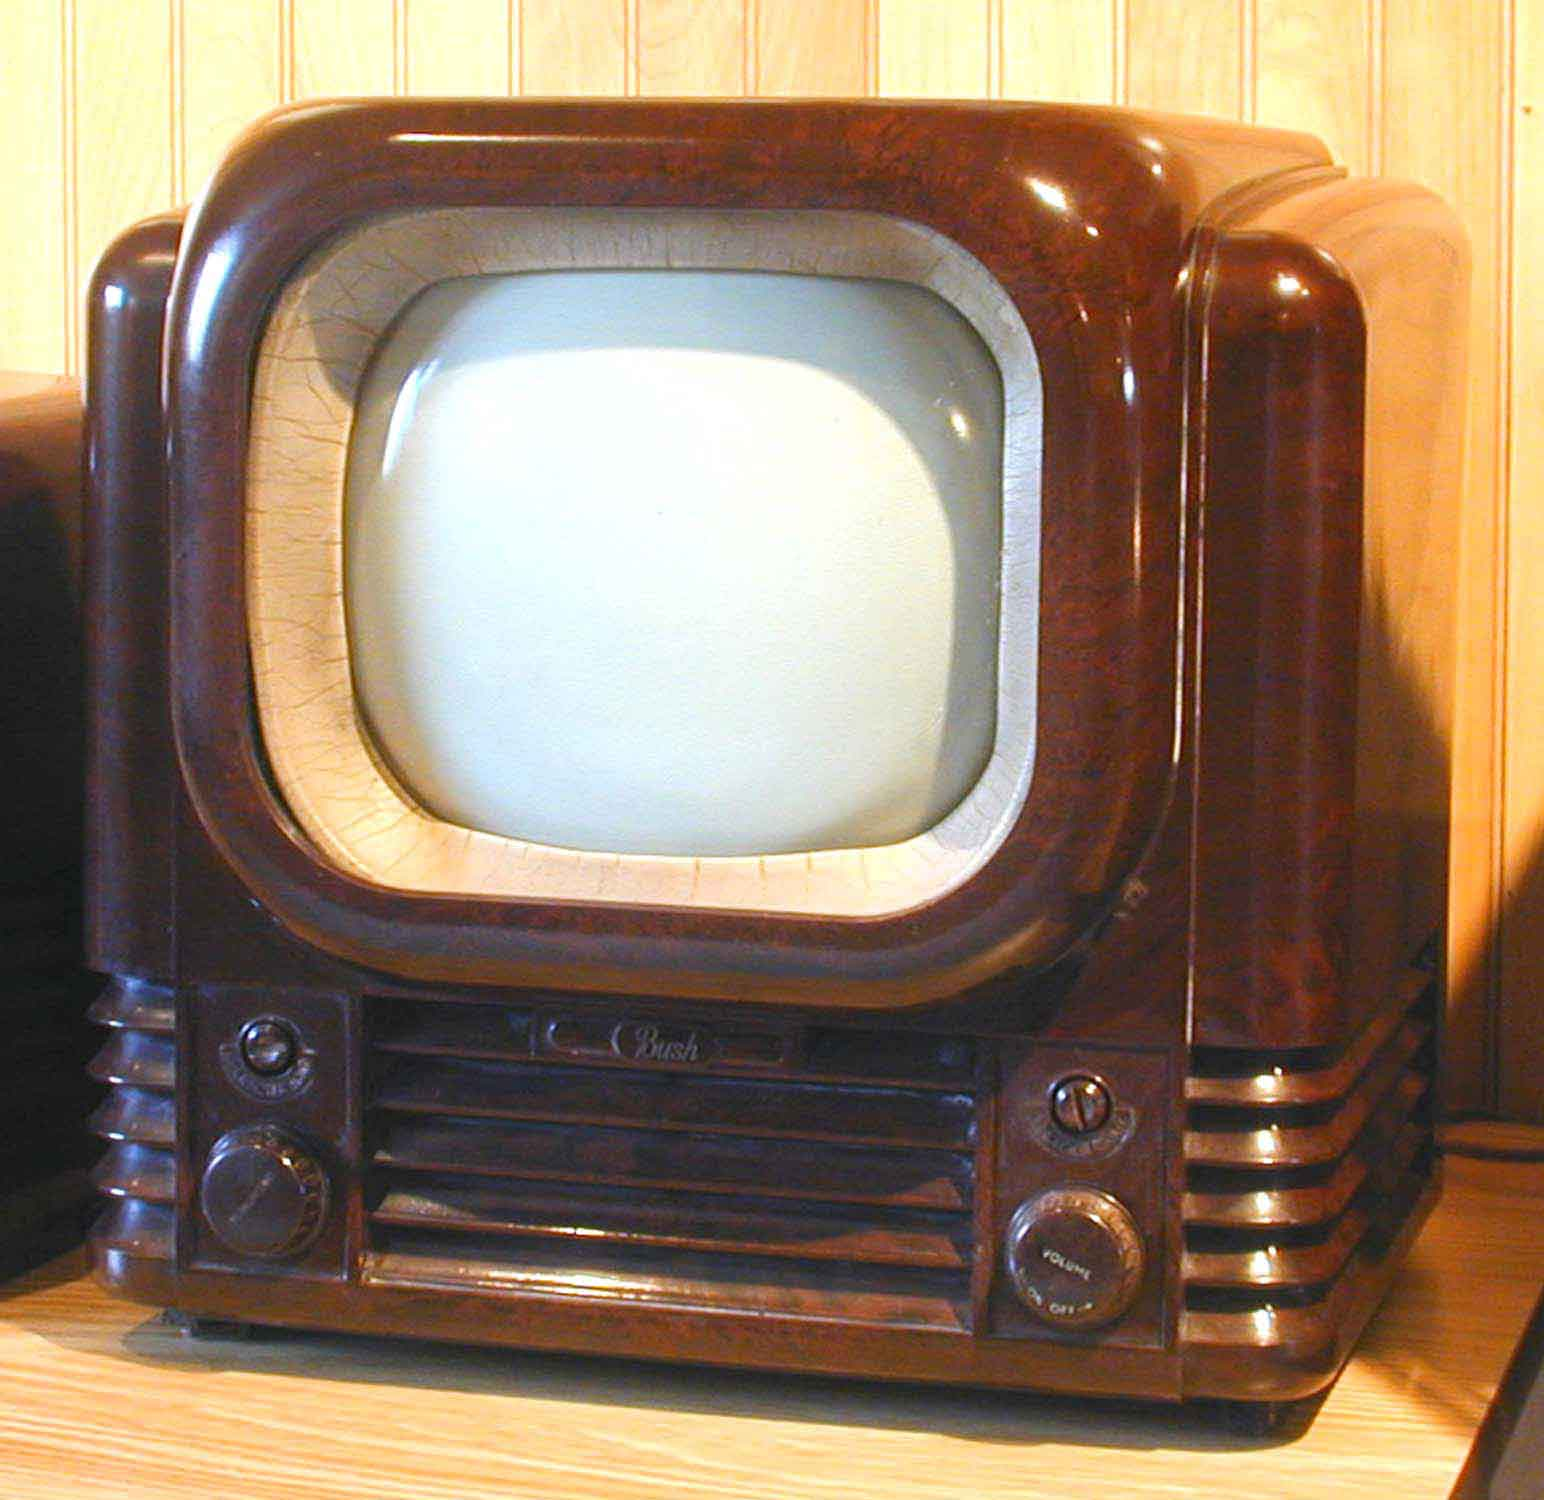 Bush TV-12 and TV-